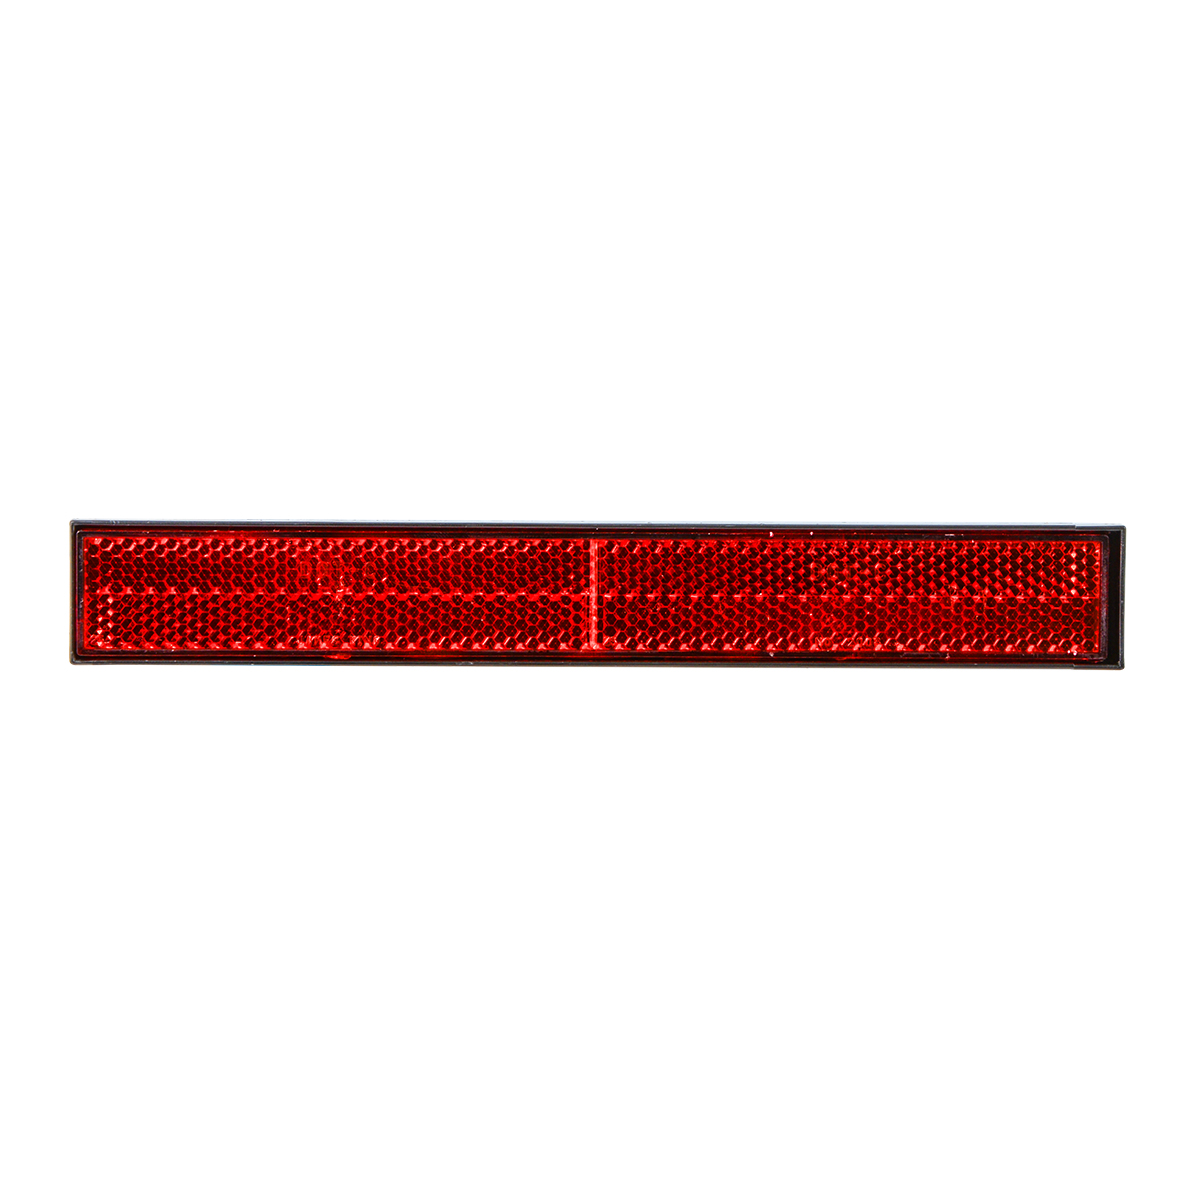 93432 Stick-On Conspicuity Reflector Strip